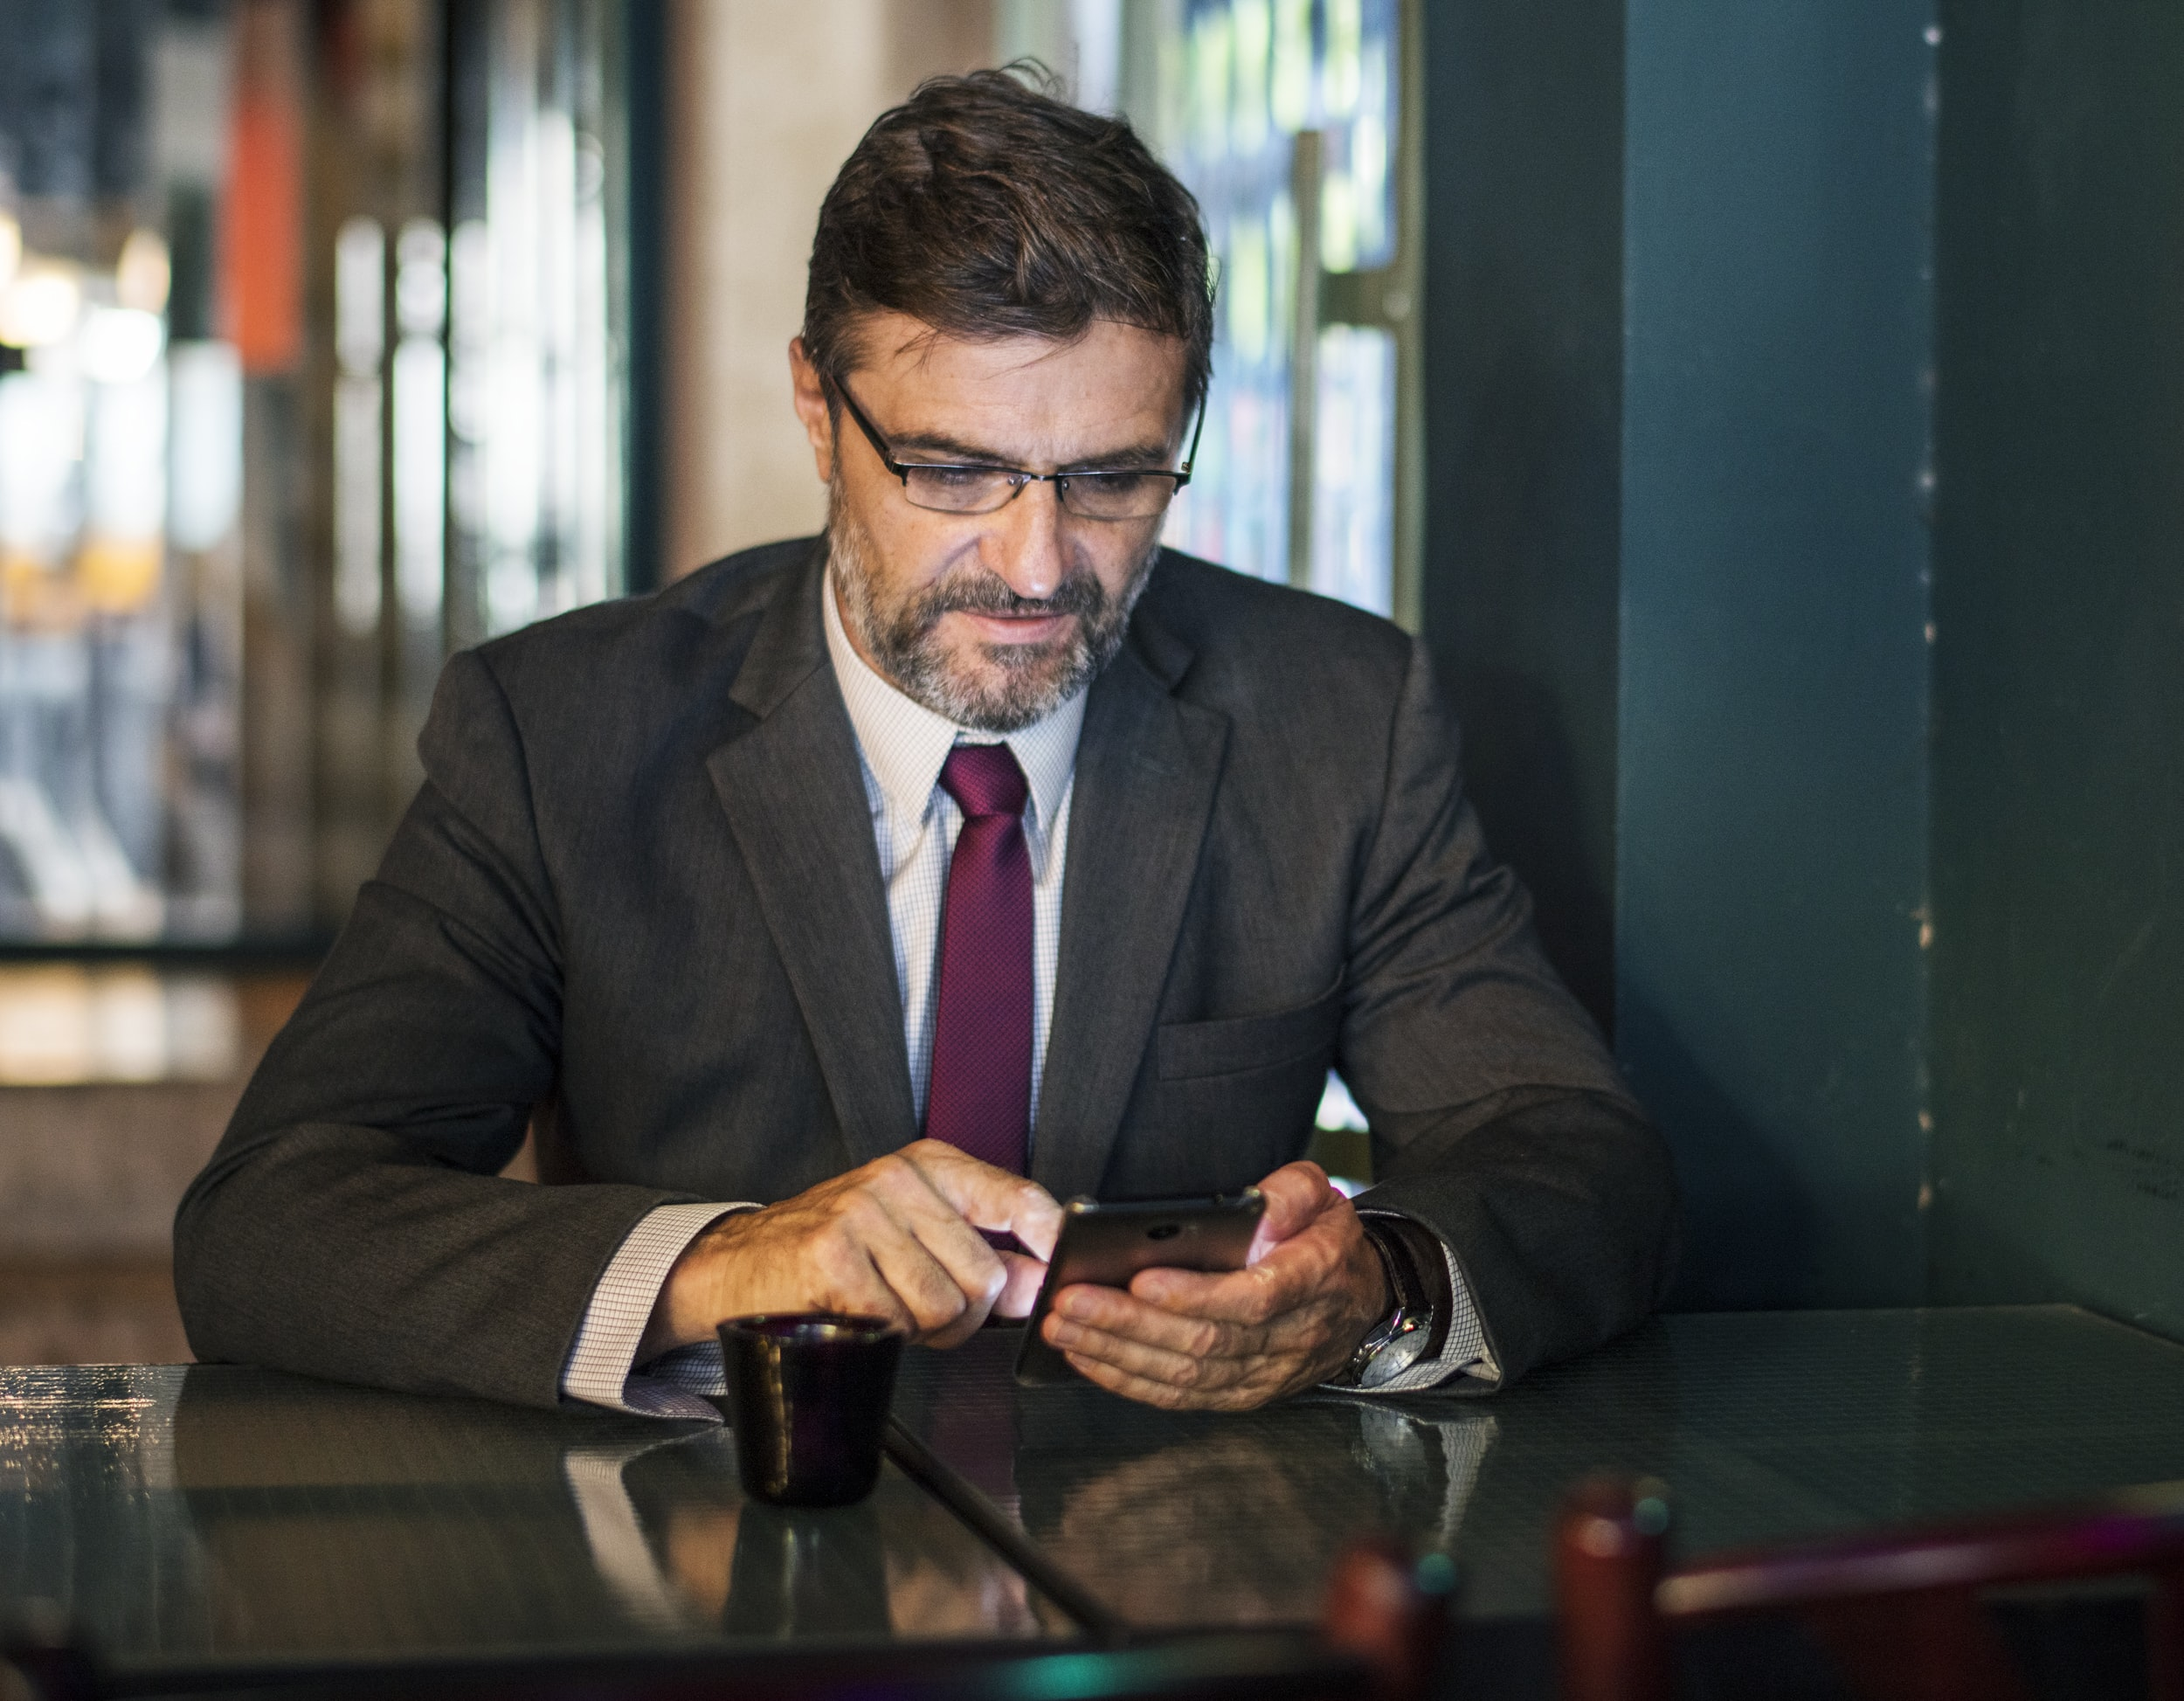 man sitting using smartphone